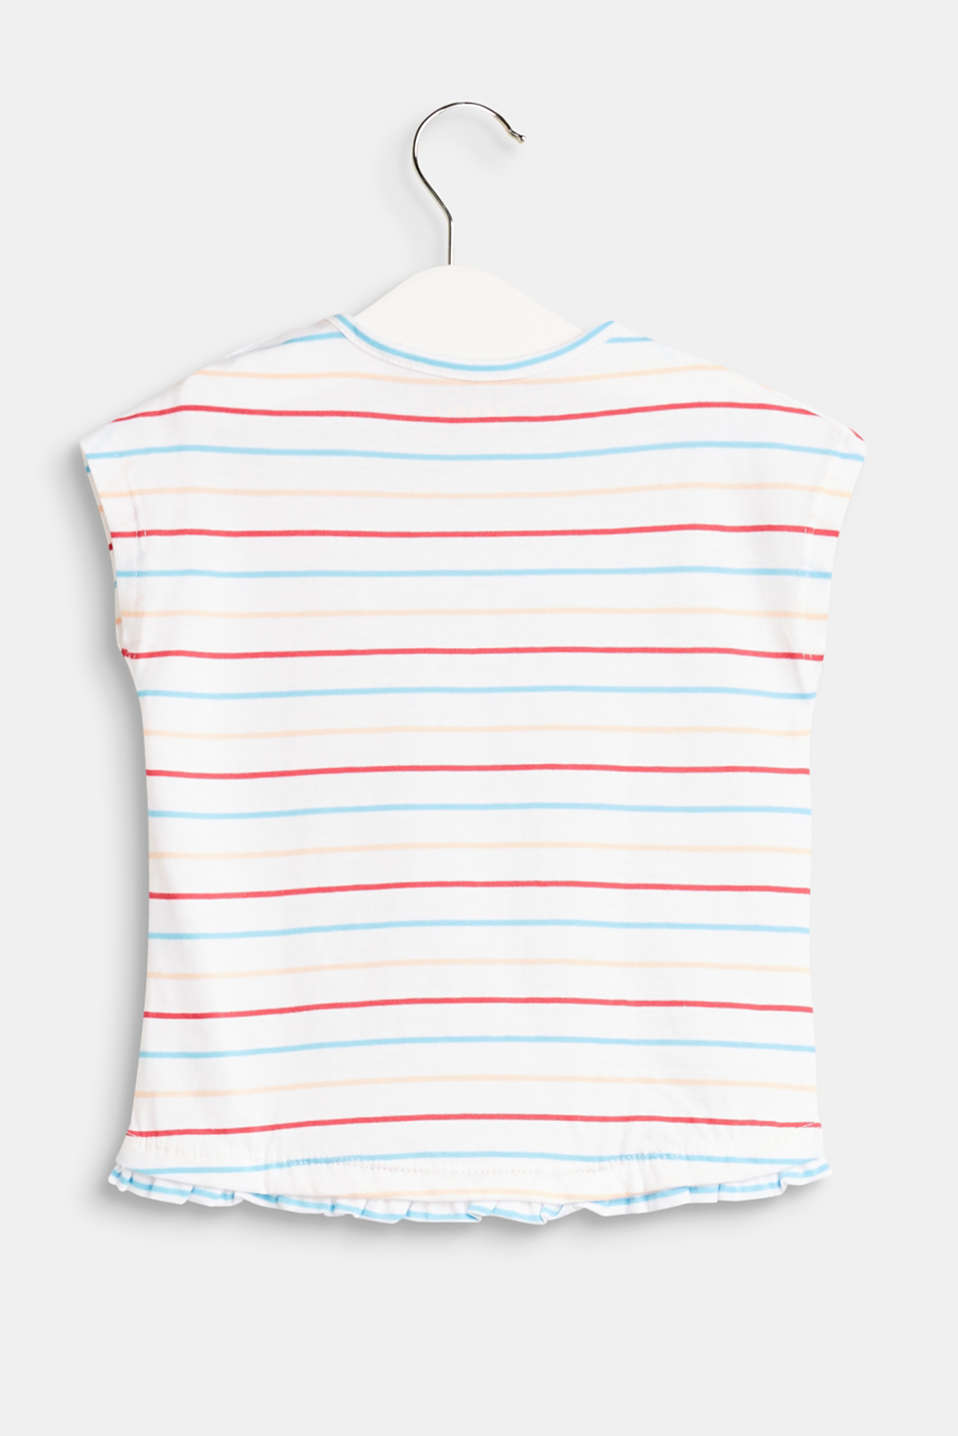 T-shirt with stripes and a hem frill, 100% cotton